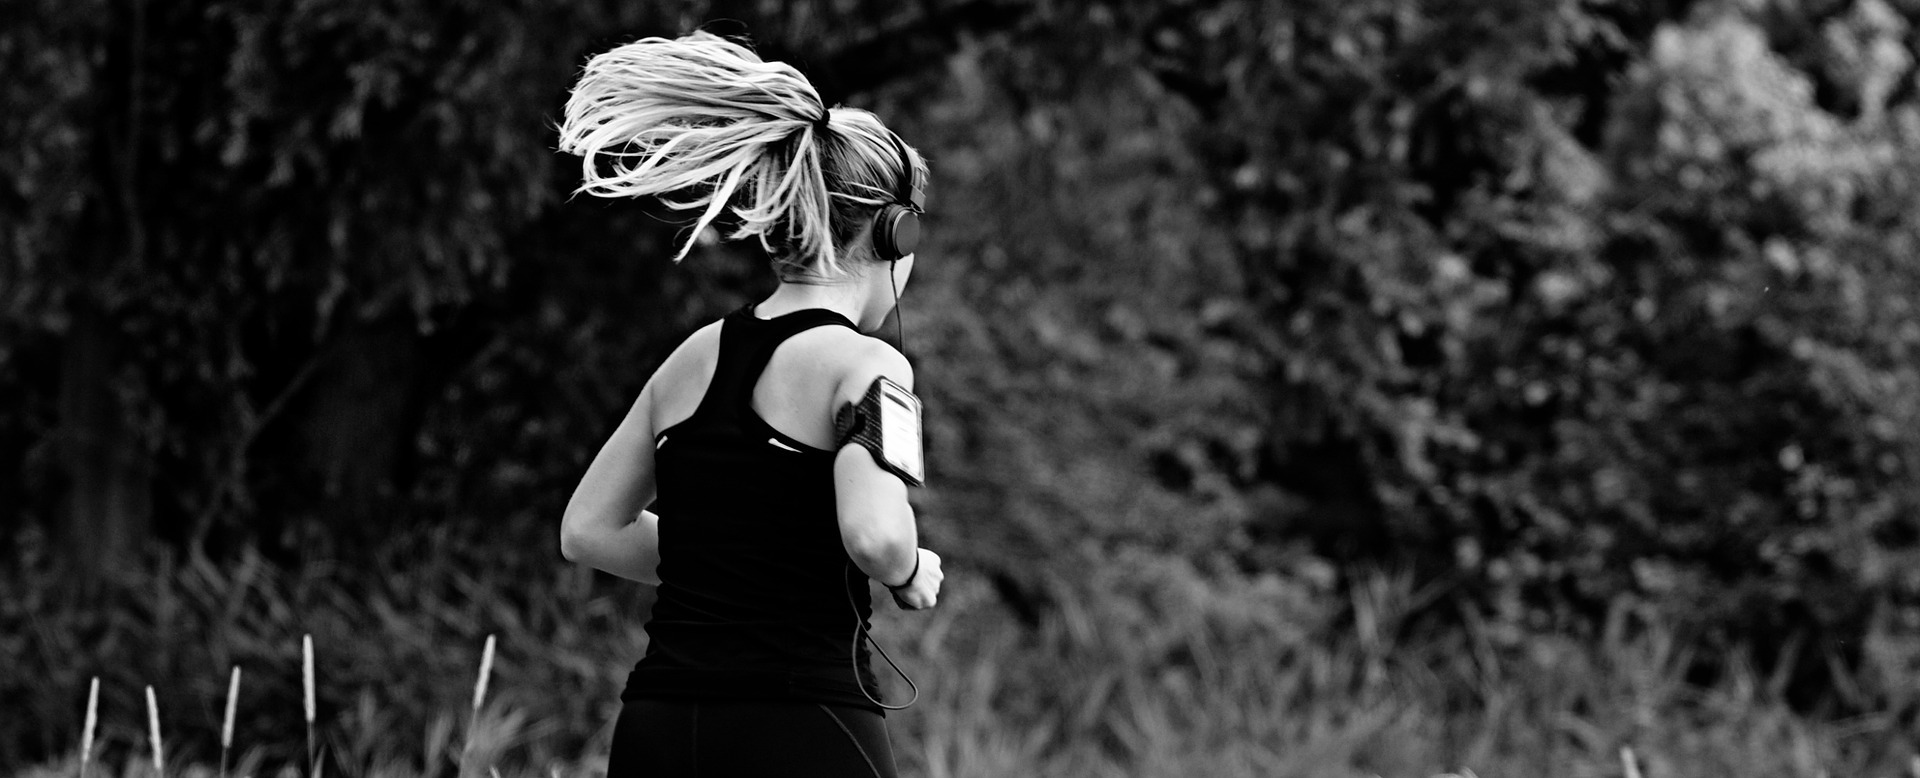 Woman running listening to her mobile device